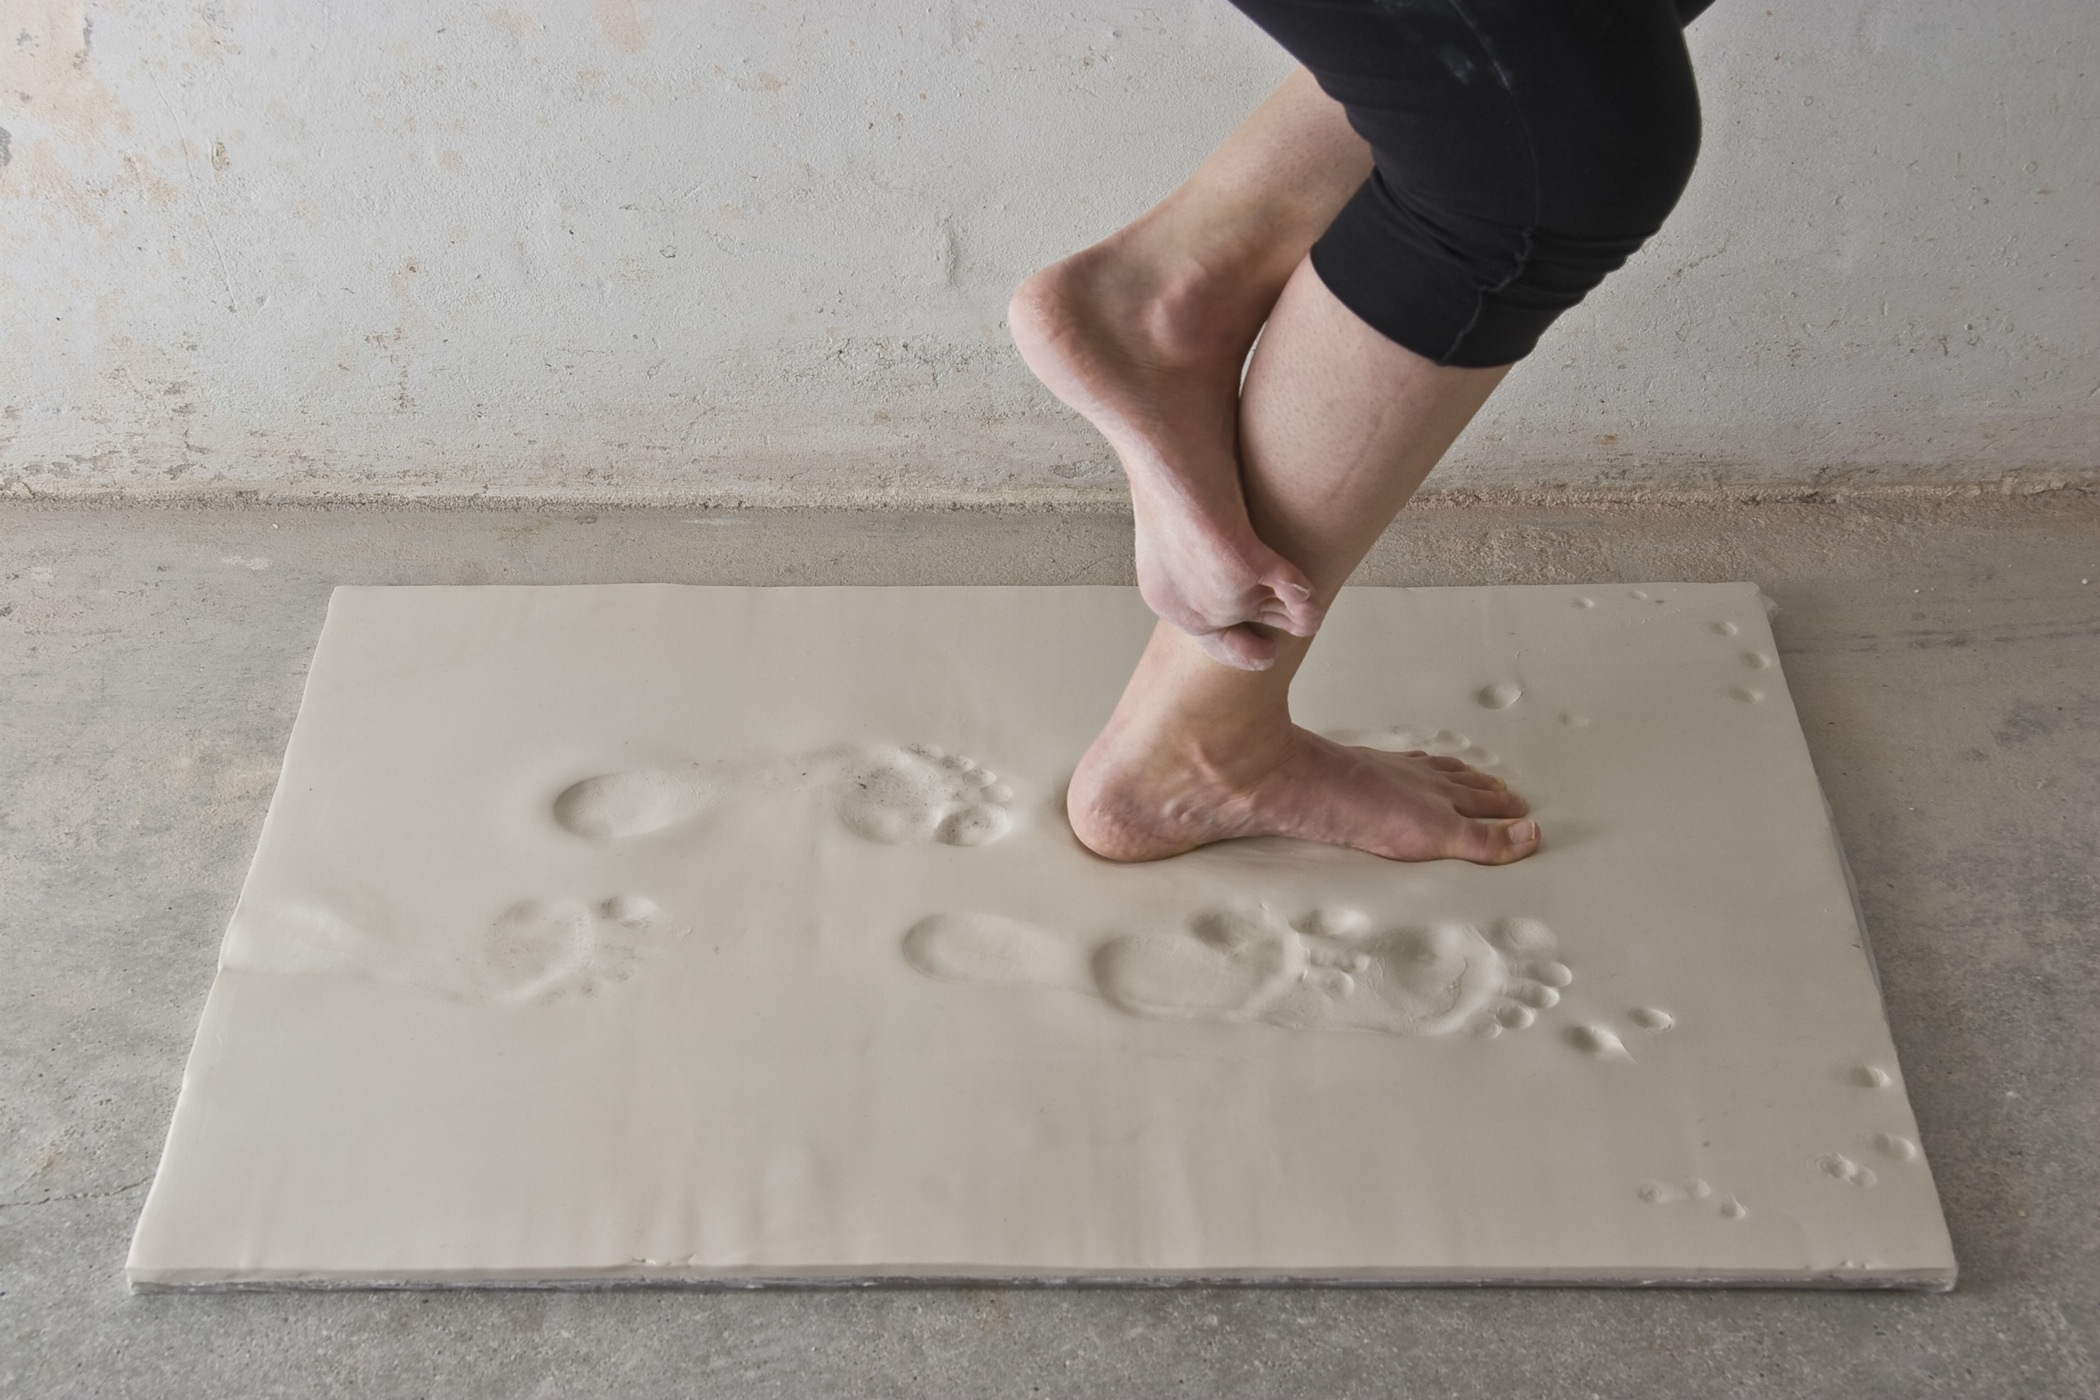 Untitled, performance on unfired porcelain, dimensions variable, 2010